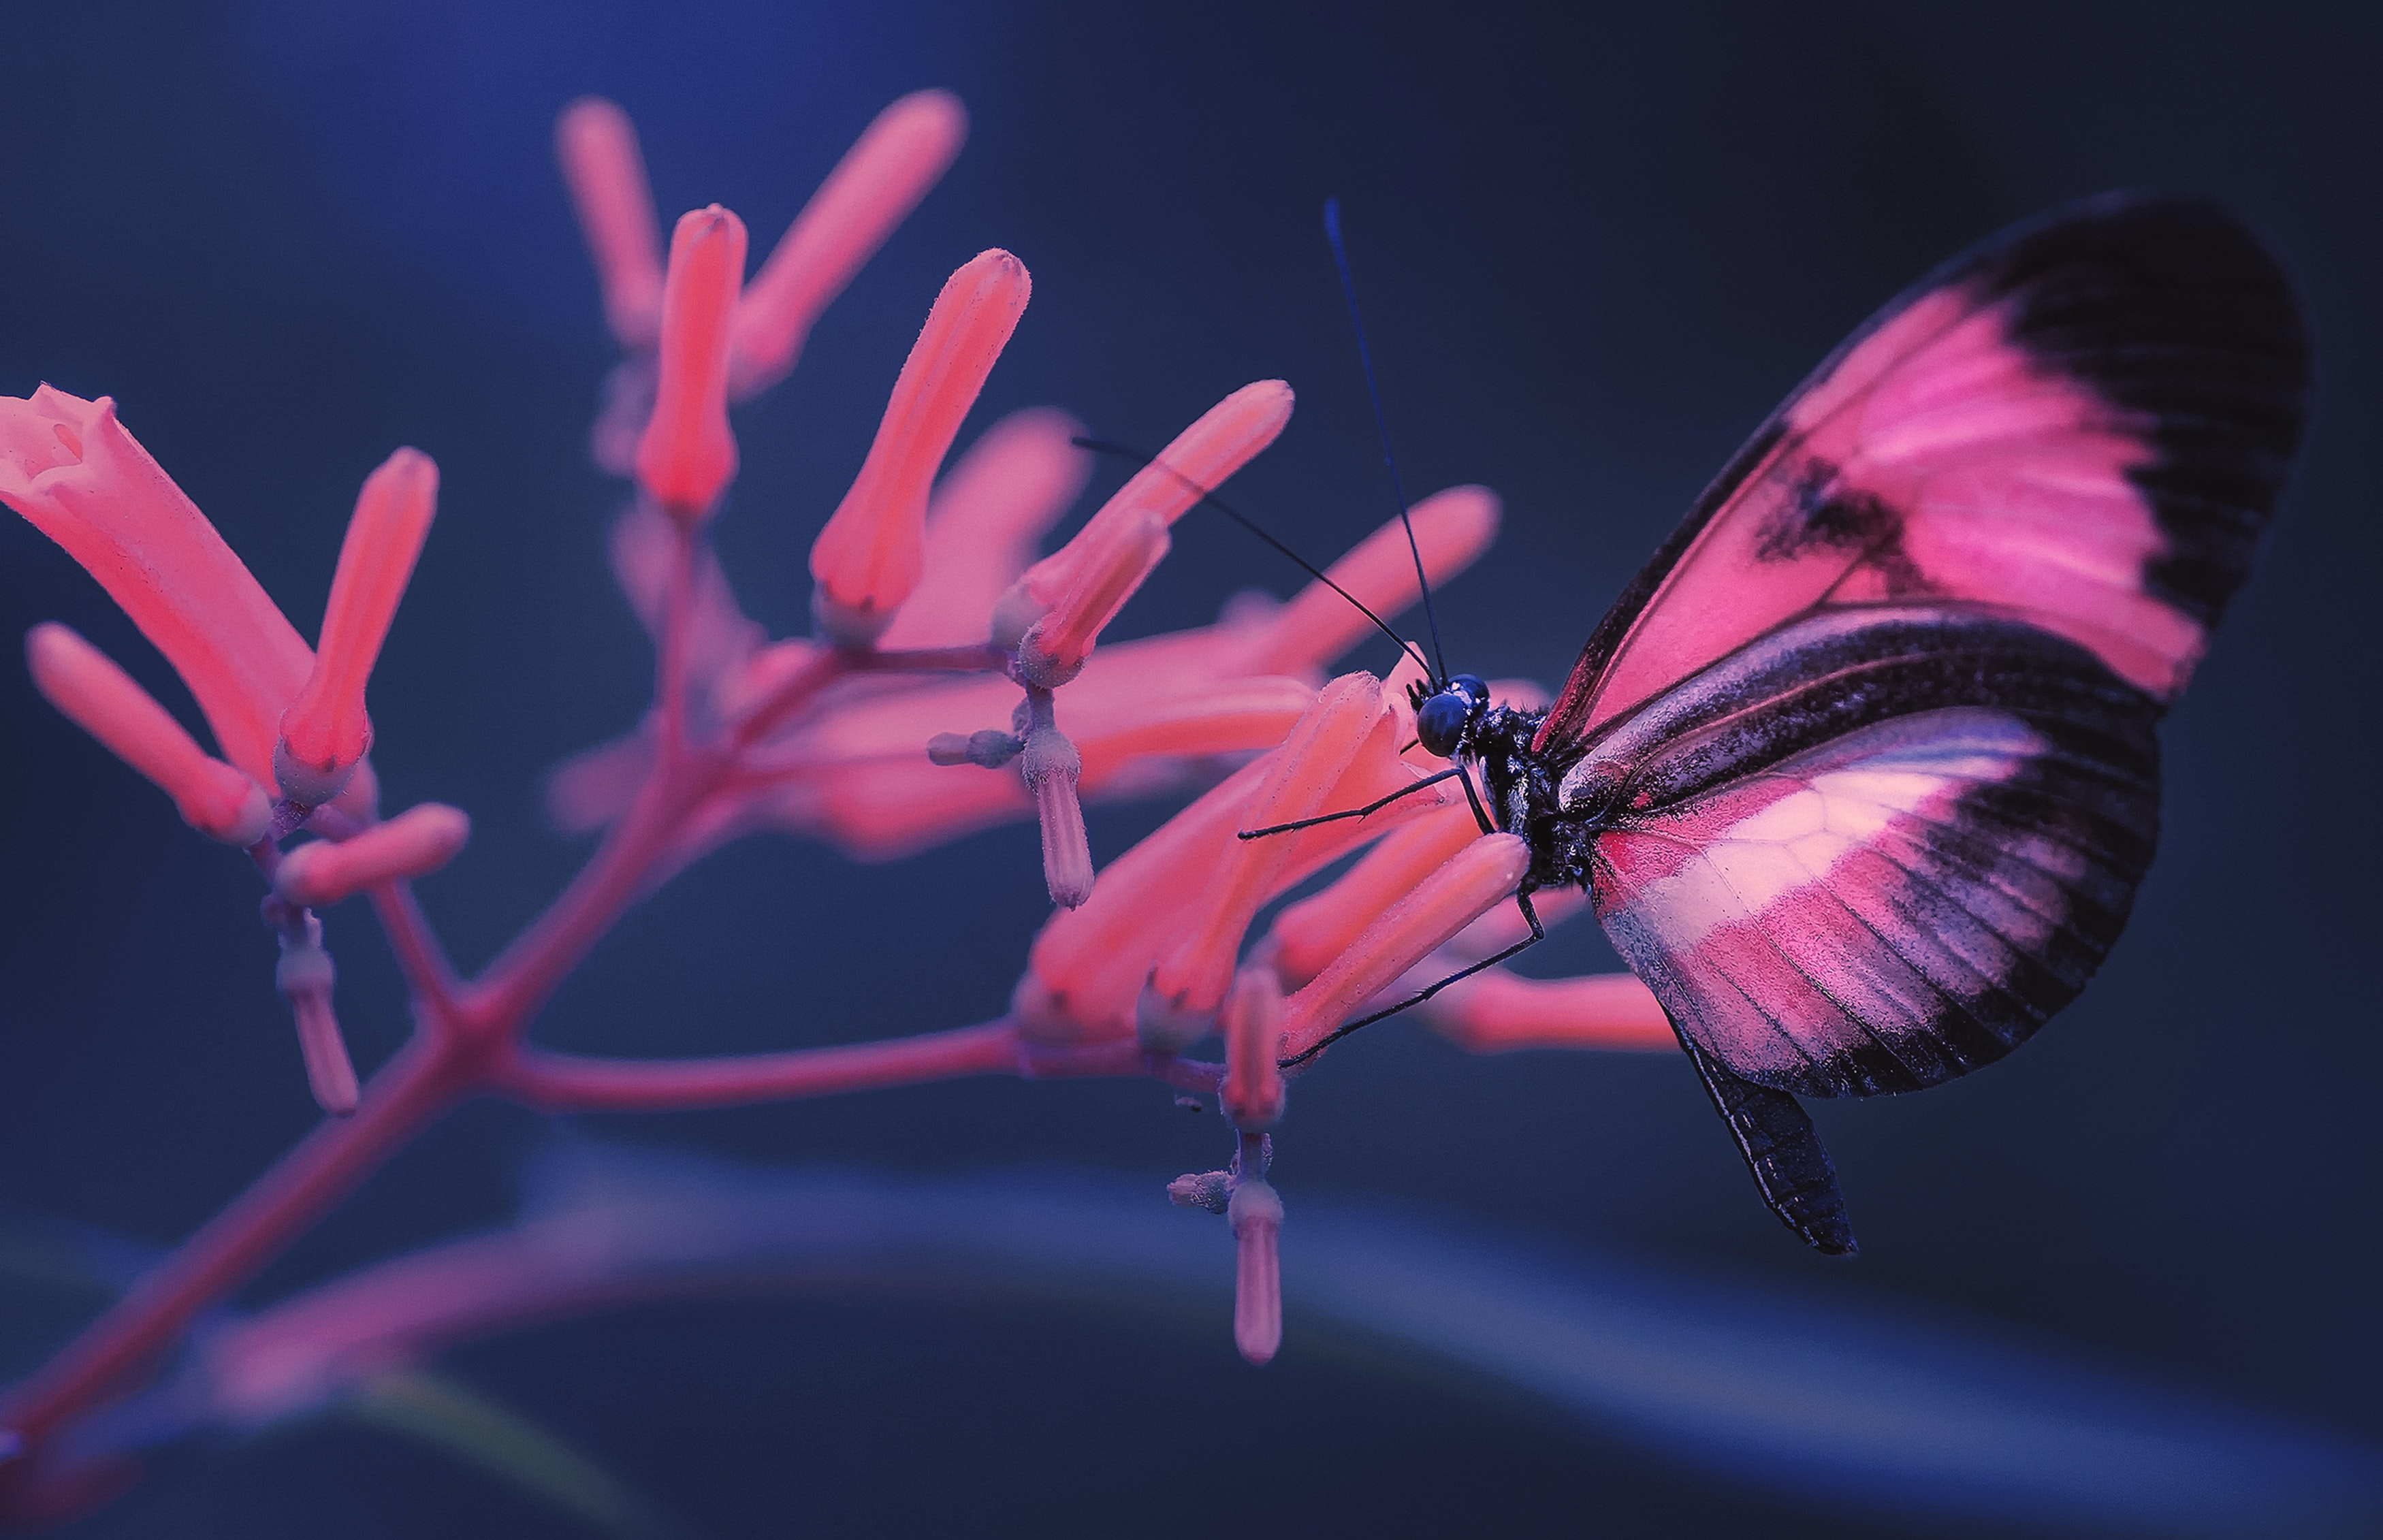 selective focus photo of pink and black butterfly on pink flower